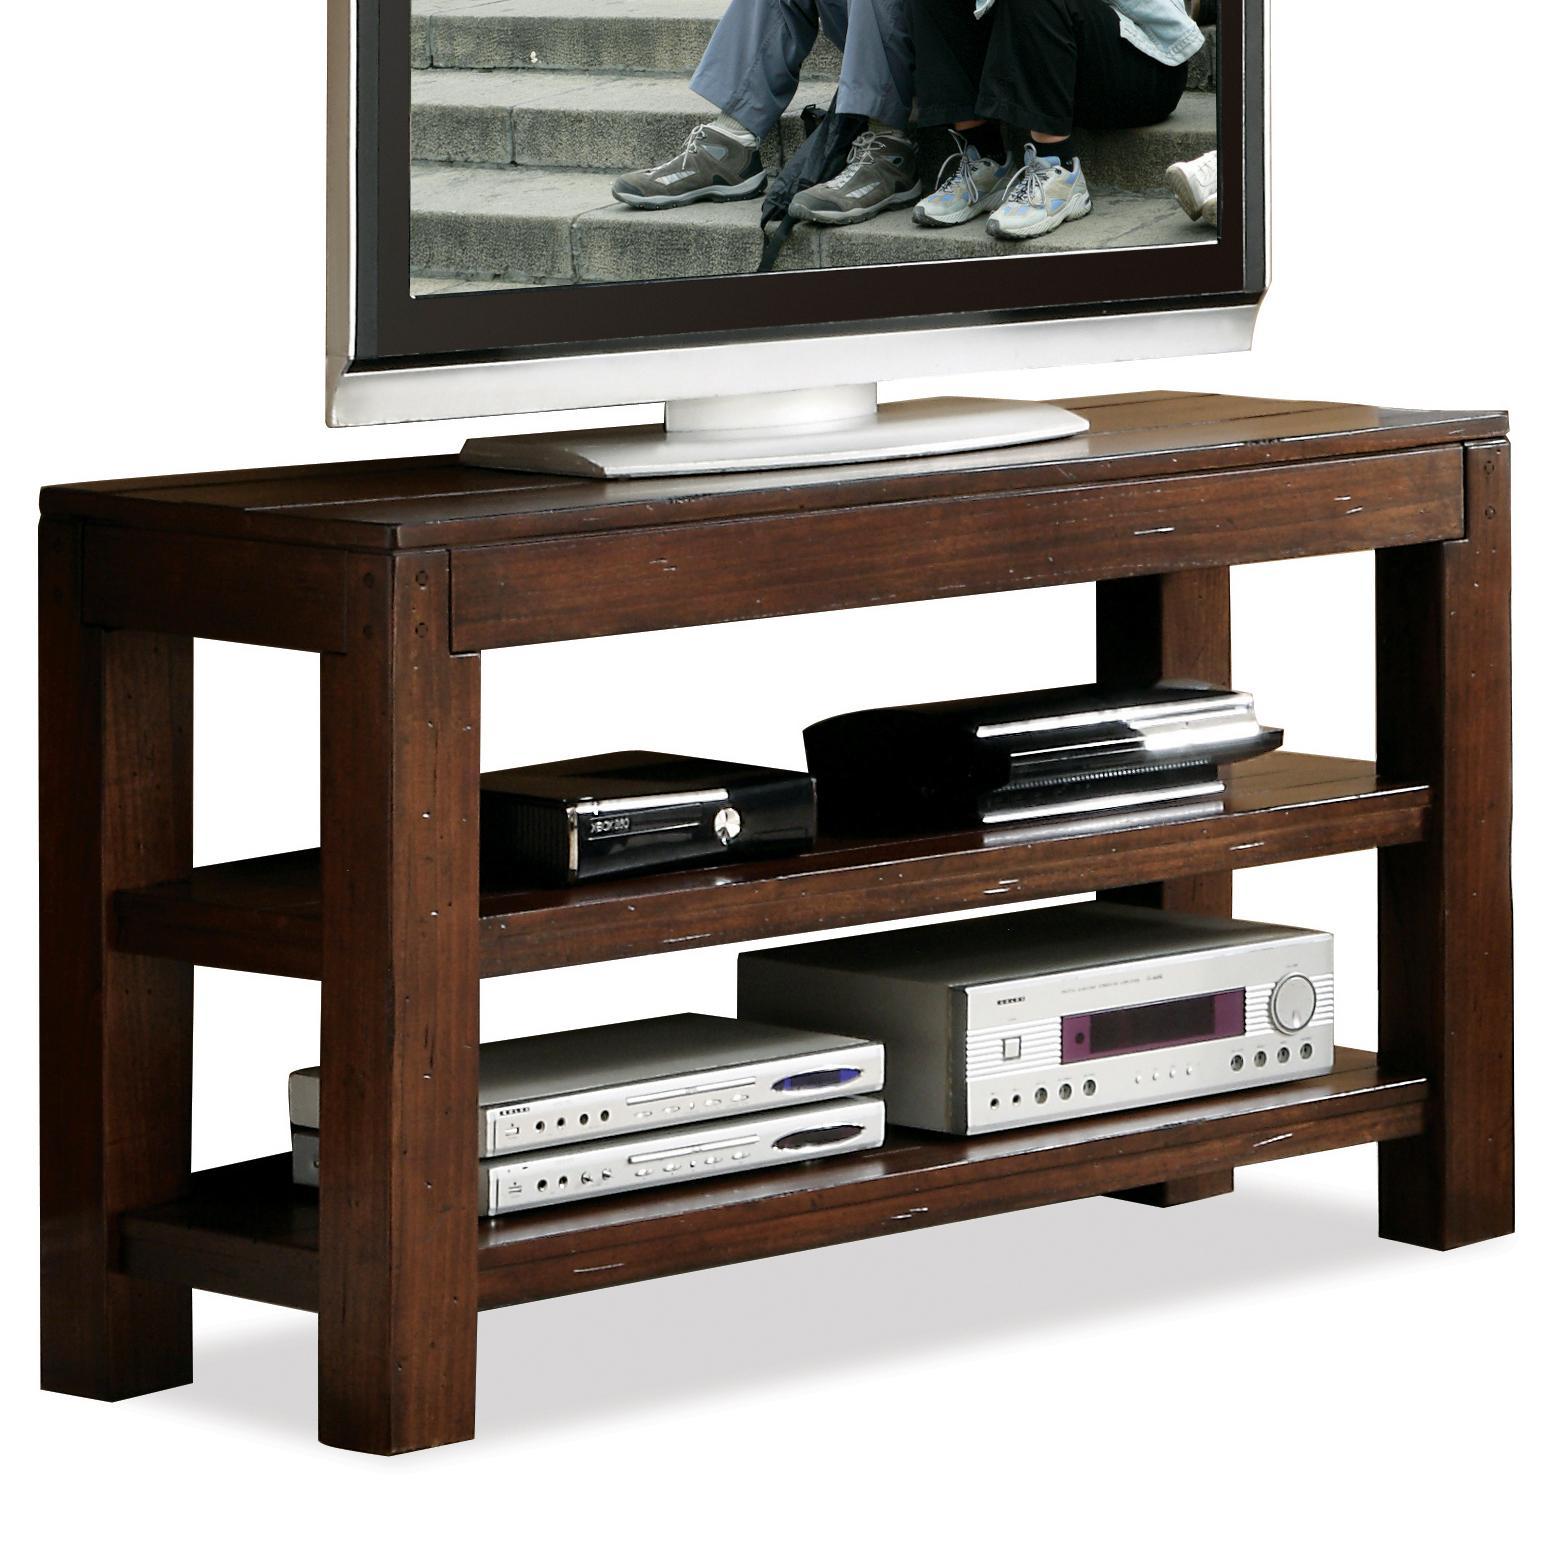 Riverside Furniture Castlewood Open Console Table - Item Number: 33516